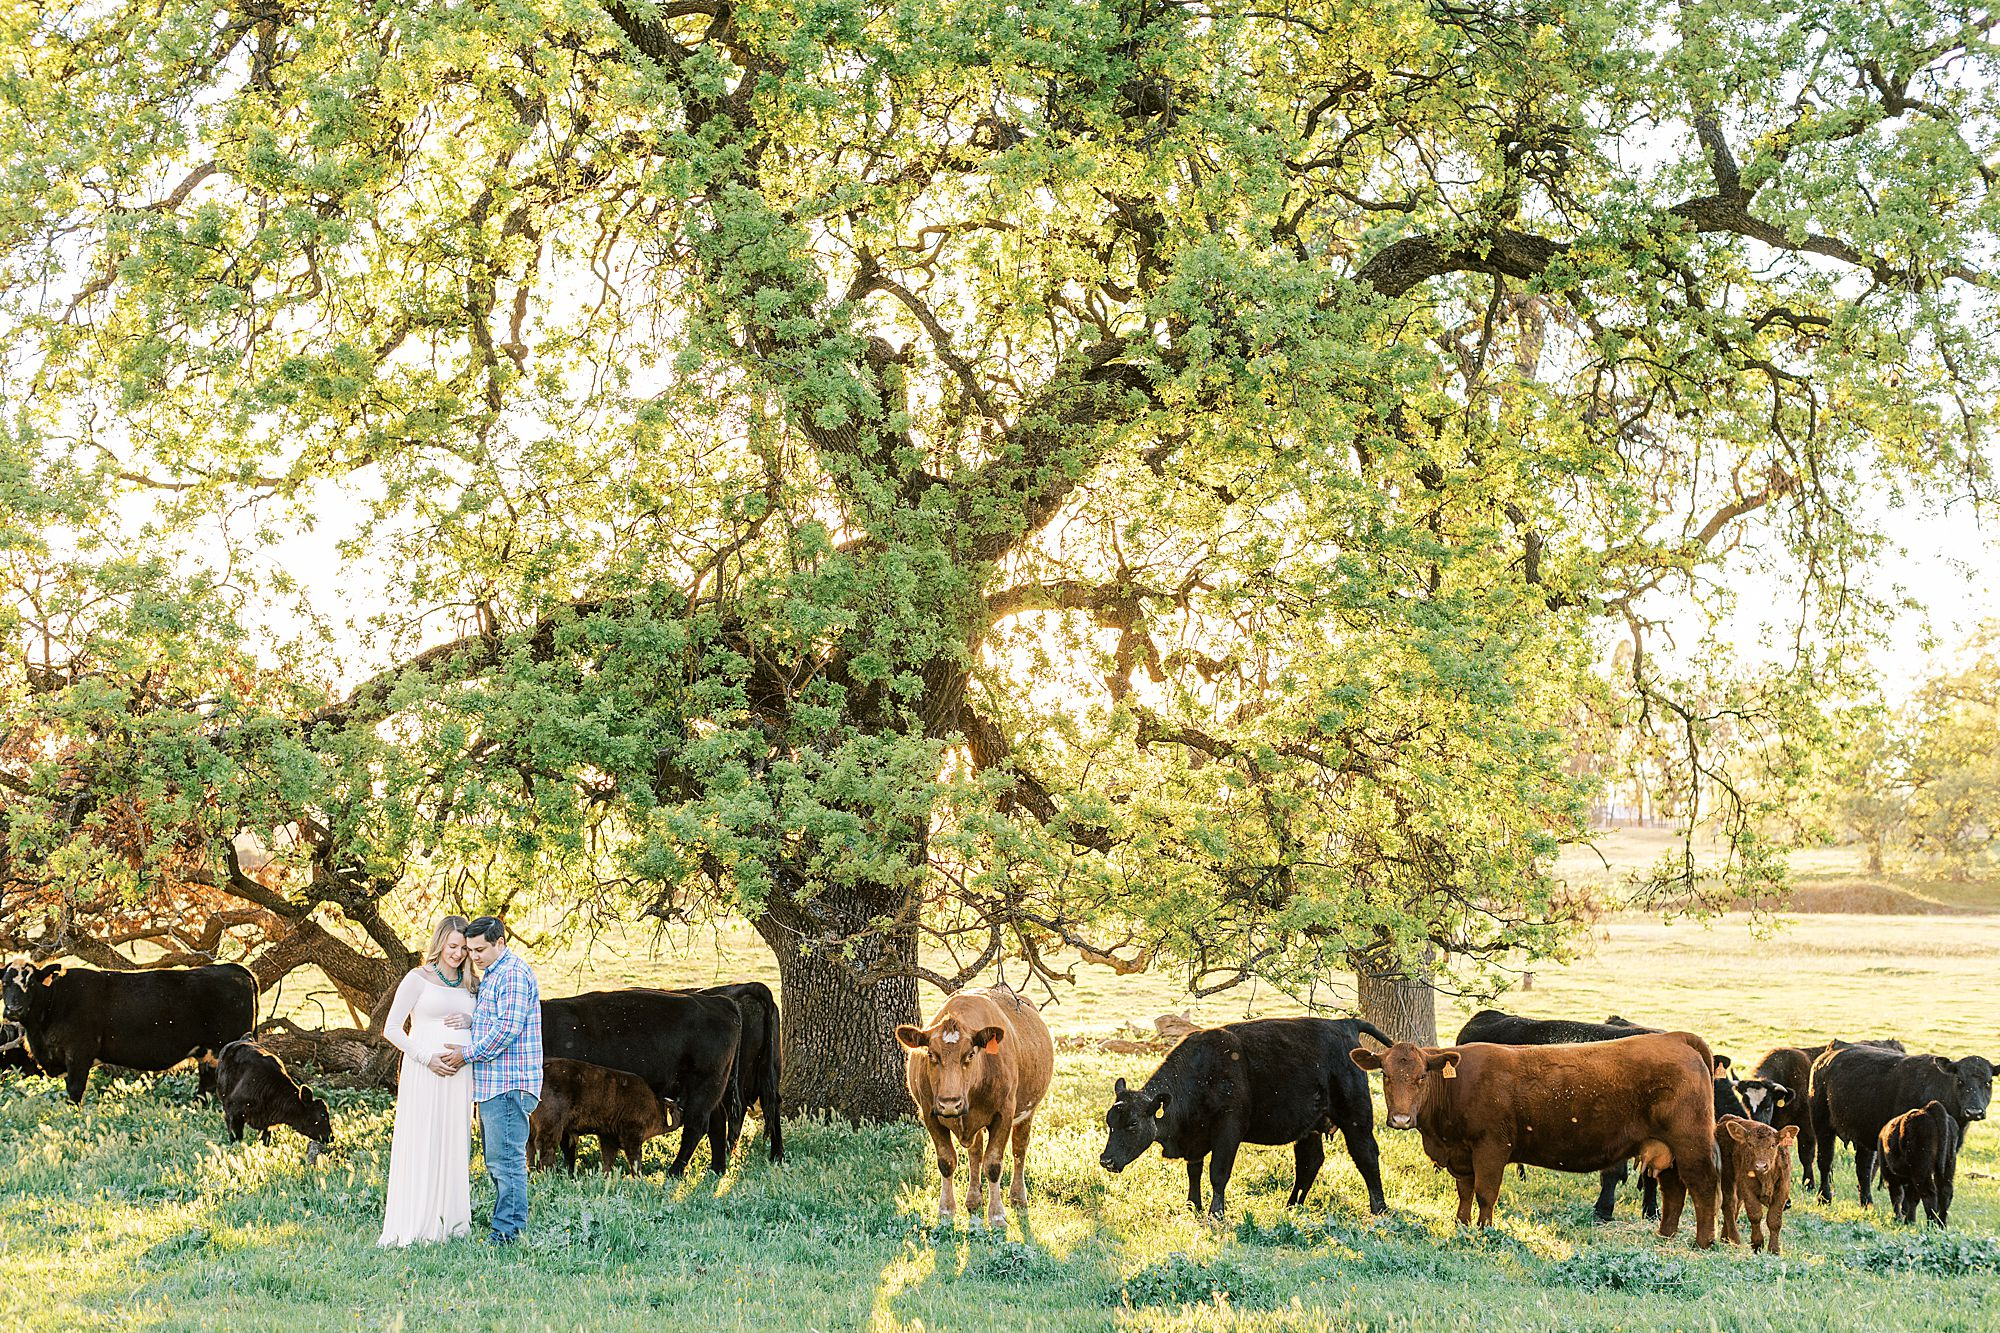 Sheridan Maternity Session - Lexie and Nick - Sacramento Maternity Photos by Ashley Baumgartner - Farmland, 4H Maternity with Cows_0008.jpg